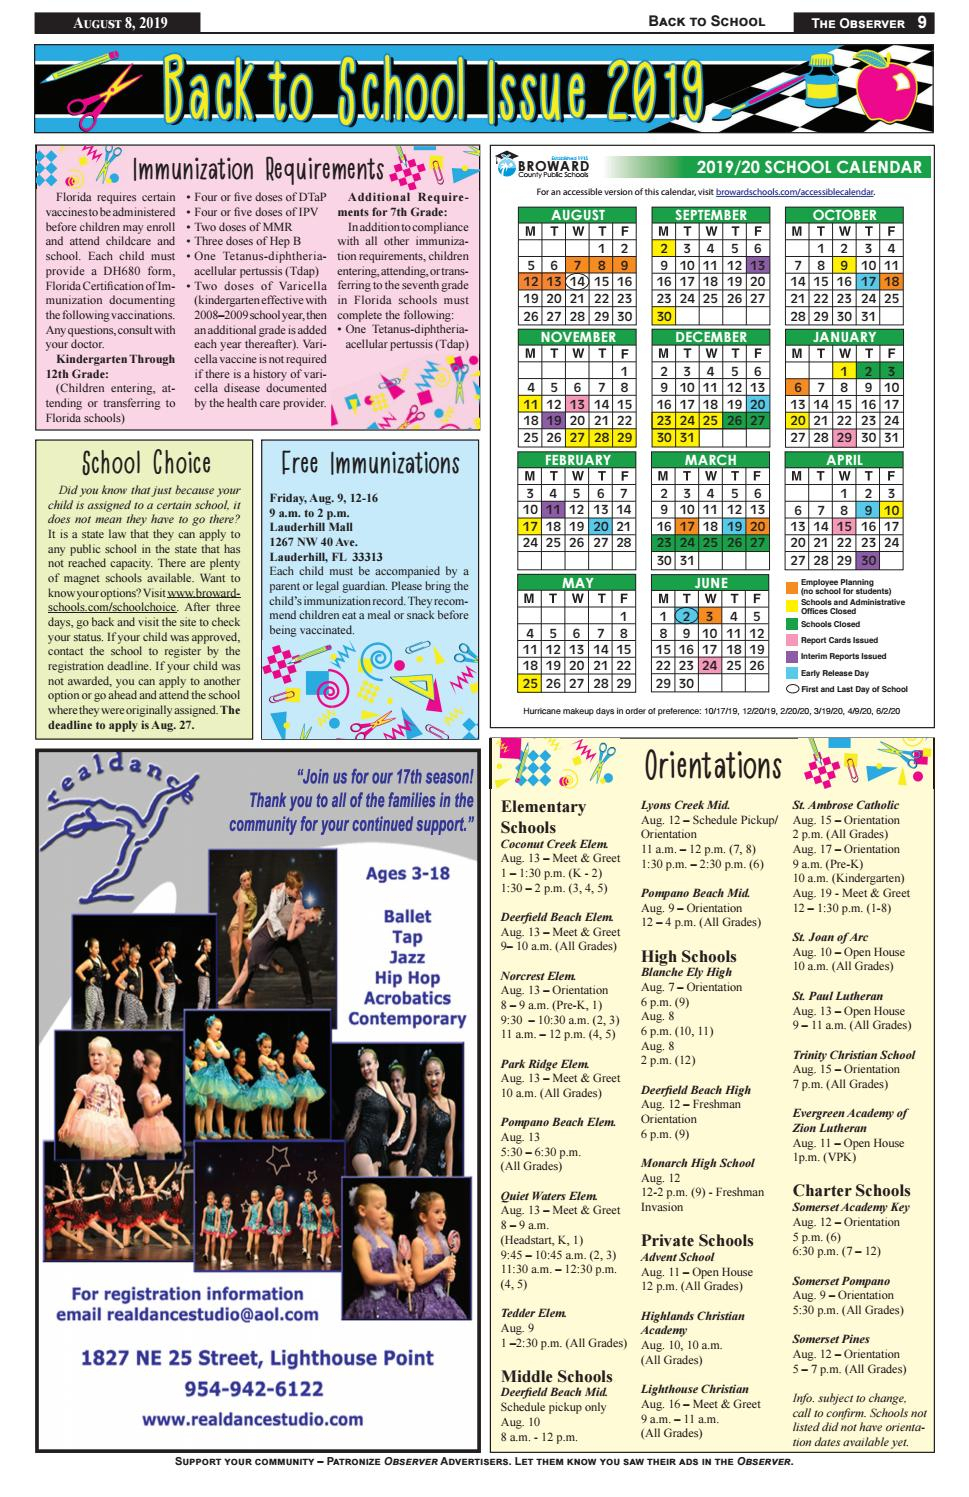 Back 2 School By Observer  Issuu pertaining to Monarch Christian School Calendar